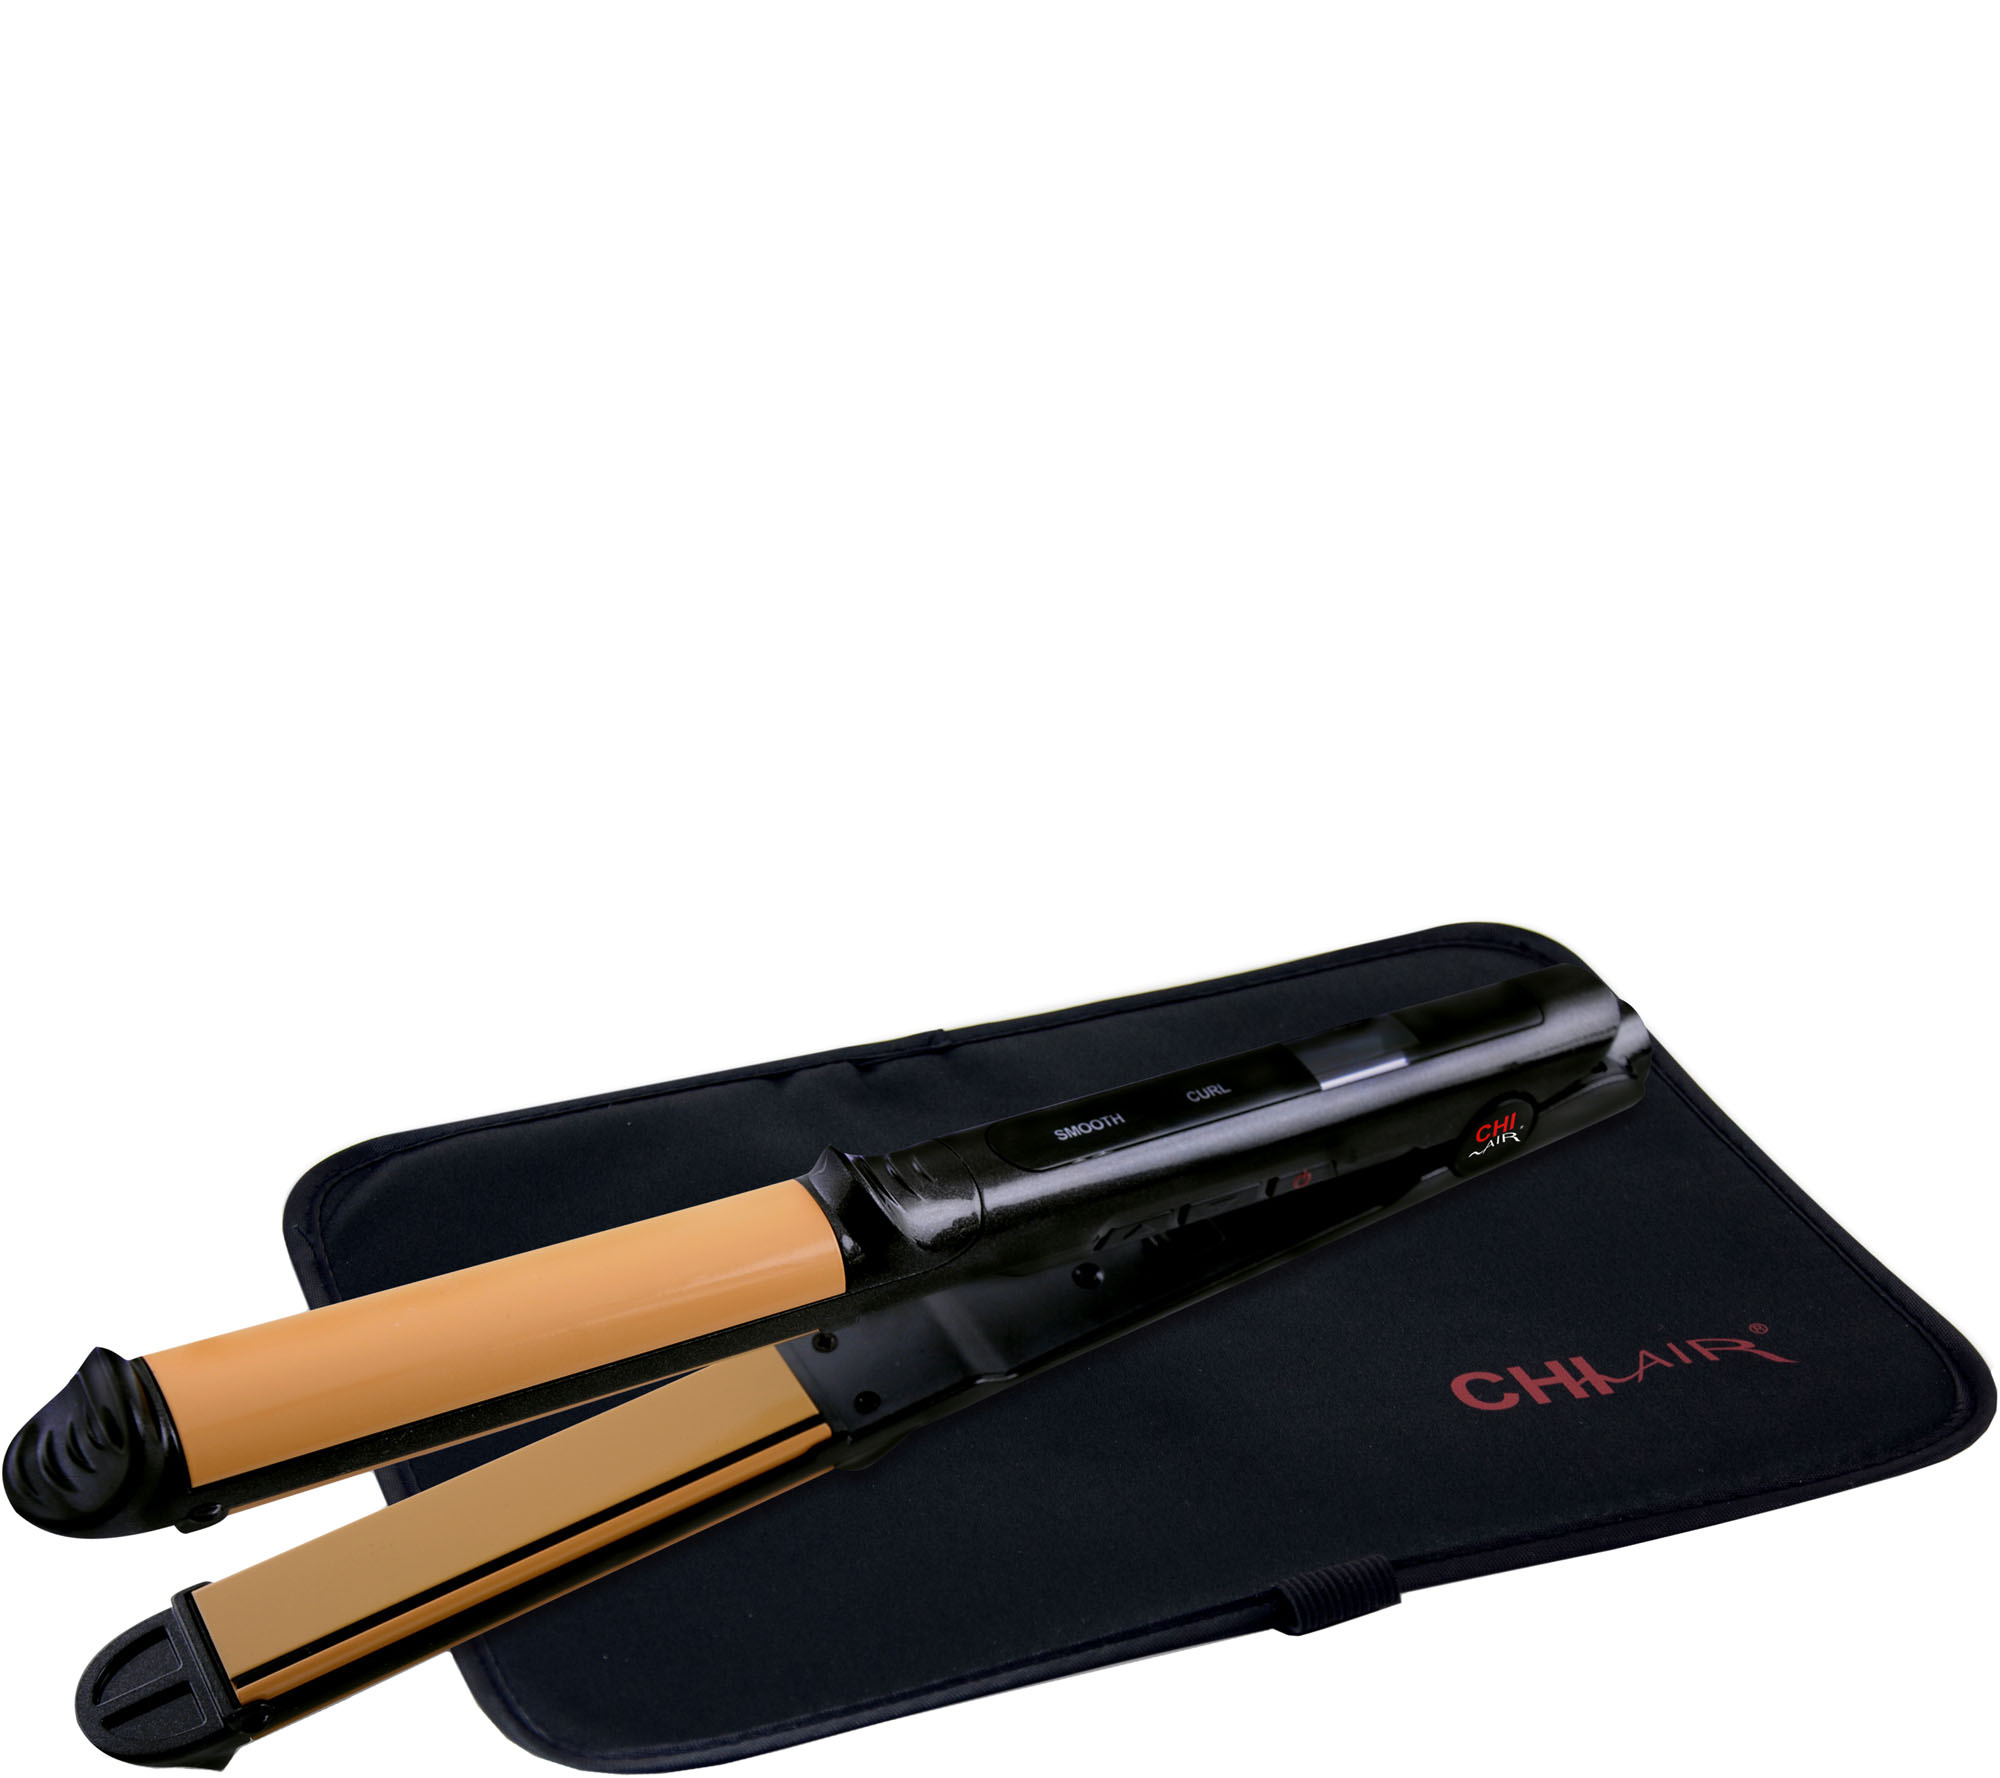 Chi Air 3 In 1 Styling Iron   Black by The Brand